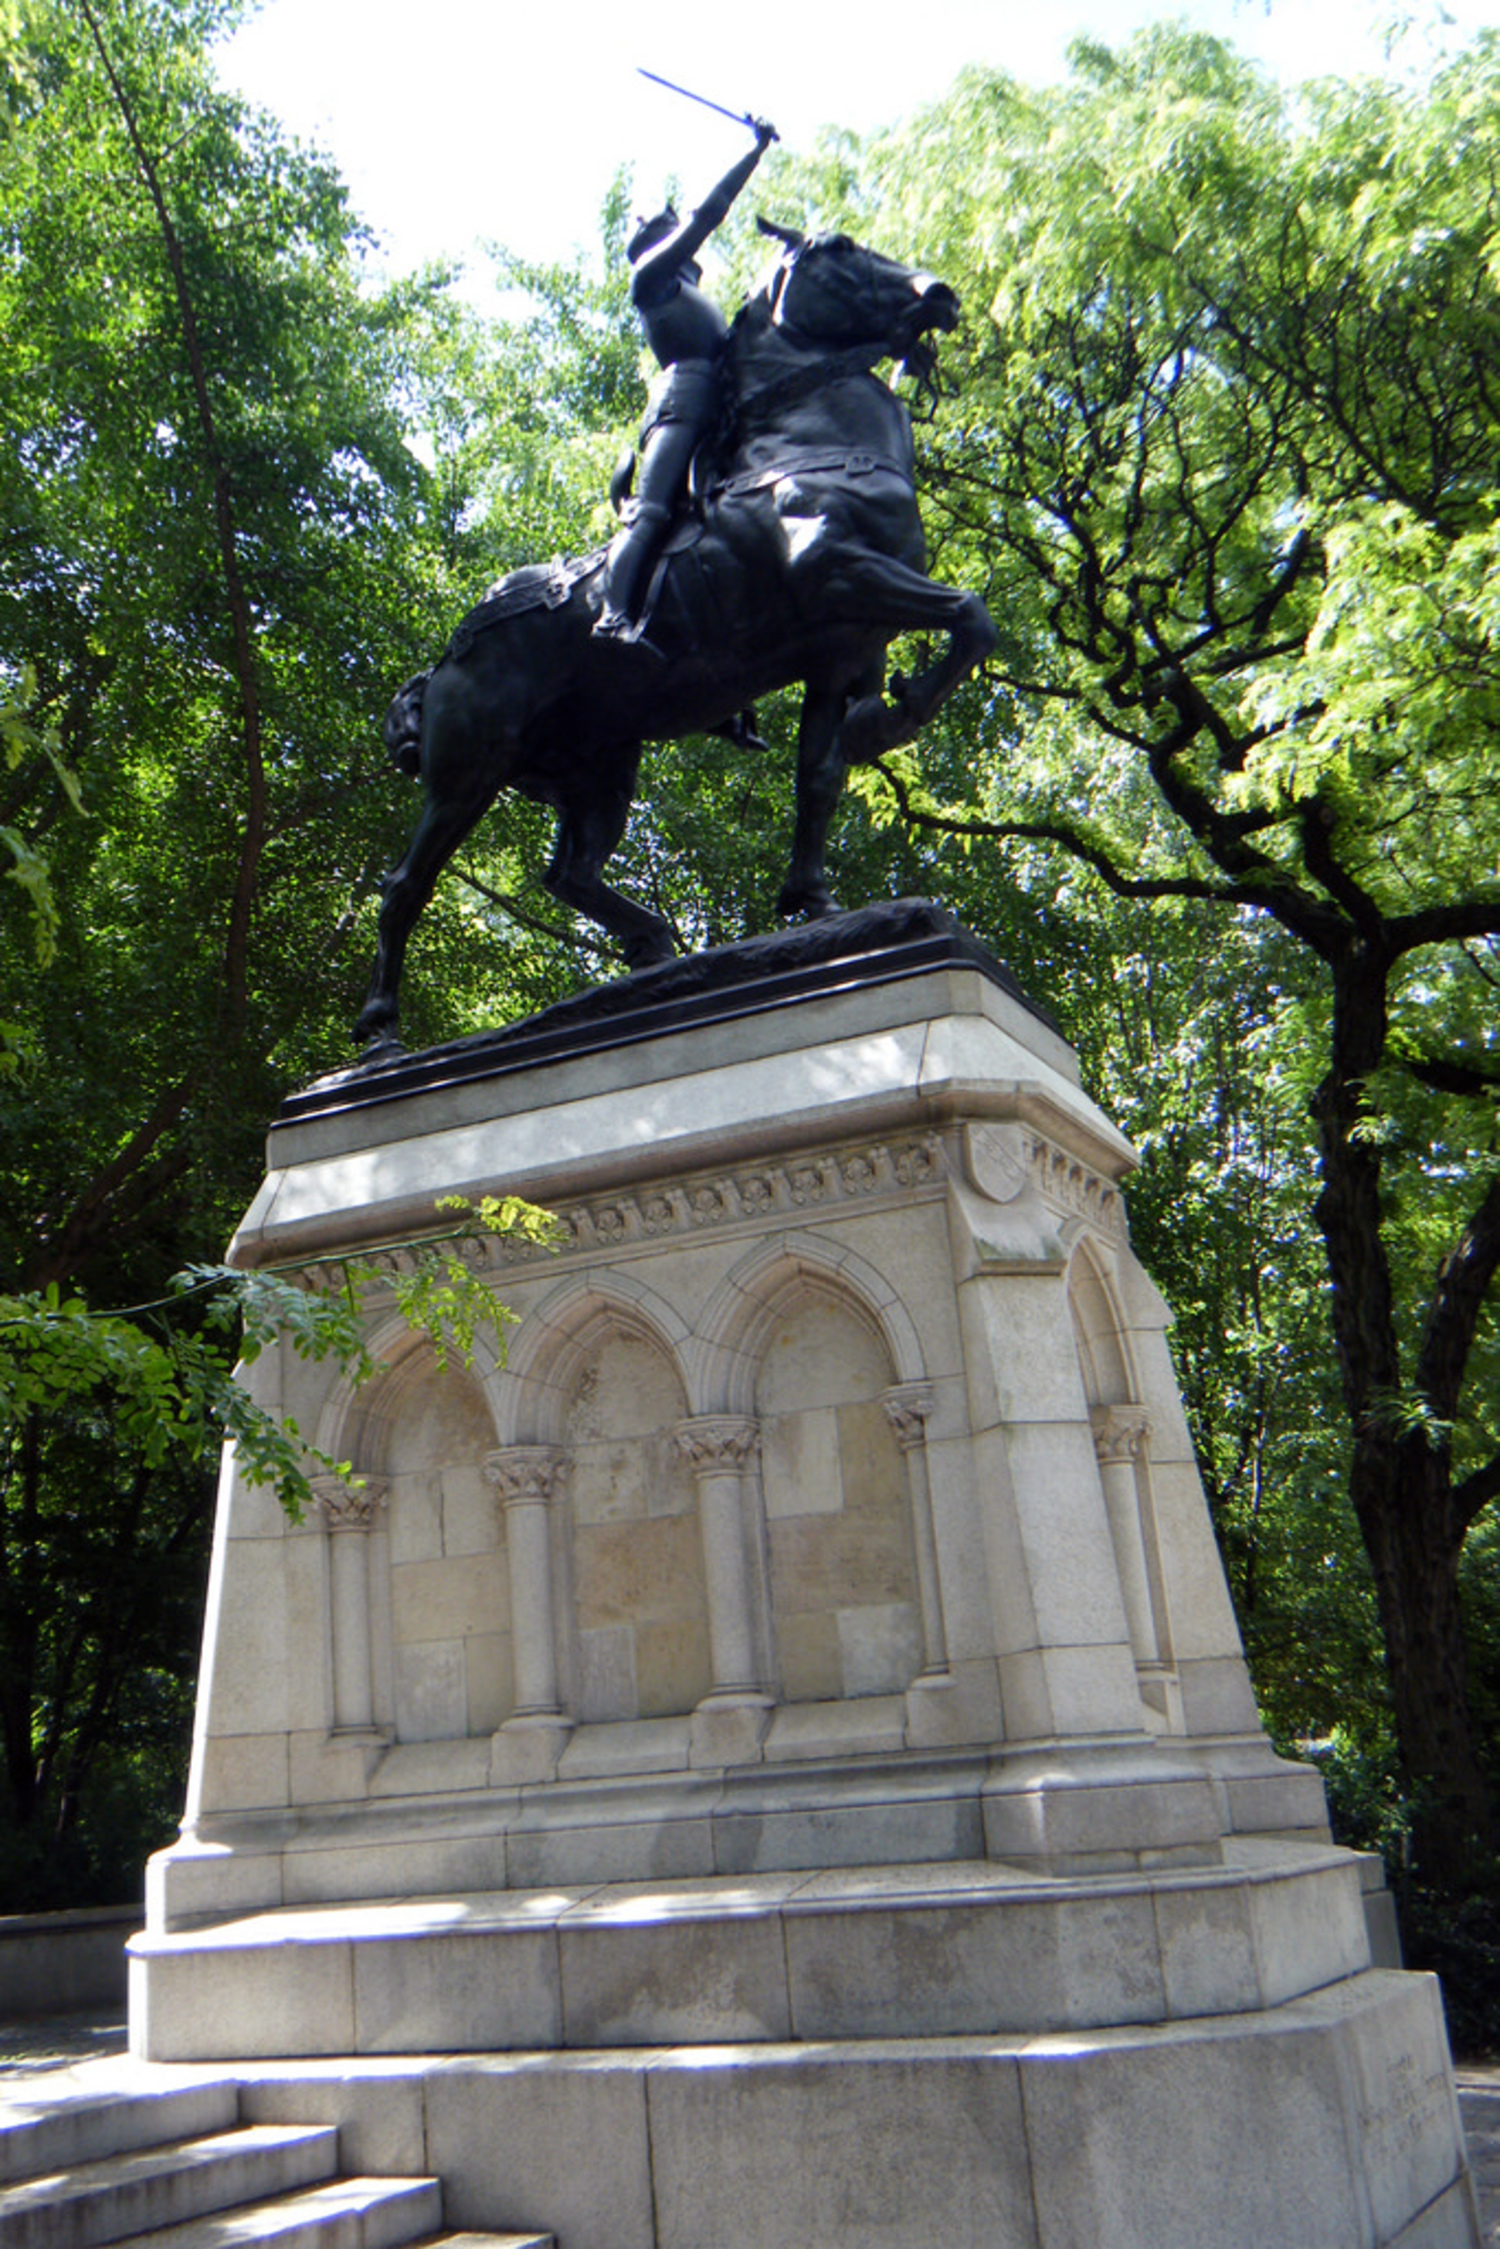 "Anna Vaughn Hyatt Huntington - Joan of Arc Statue | This was the first statue made by a woman to be installed in New York City and also the first statue of a woman to be installed in New York City.   Joan of Arc Island - Riverside Park - 93rd Street & Riverside Drive in Manhattan, New York City - <a href=""http://maps.google.com/maps?f=q&source=s_q&hl=en&geocode=&q=93rd+Street+&+Riverside+Drive+Manhattan,+New+York+City+&sll=46.085154,0.908565&sspn=7.329362,19.753418&ie=UTF8&hq=&hnear=Riverside+Dr+&+W+93rd+St,+New+York,+10025&z=16"" rel=""nofollow"">Google Map</a> - <a href=""http://www.flickr.com/photos/sheenachi/tags/joanofarcisland/"">additional views</a>"